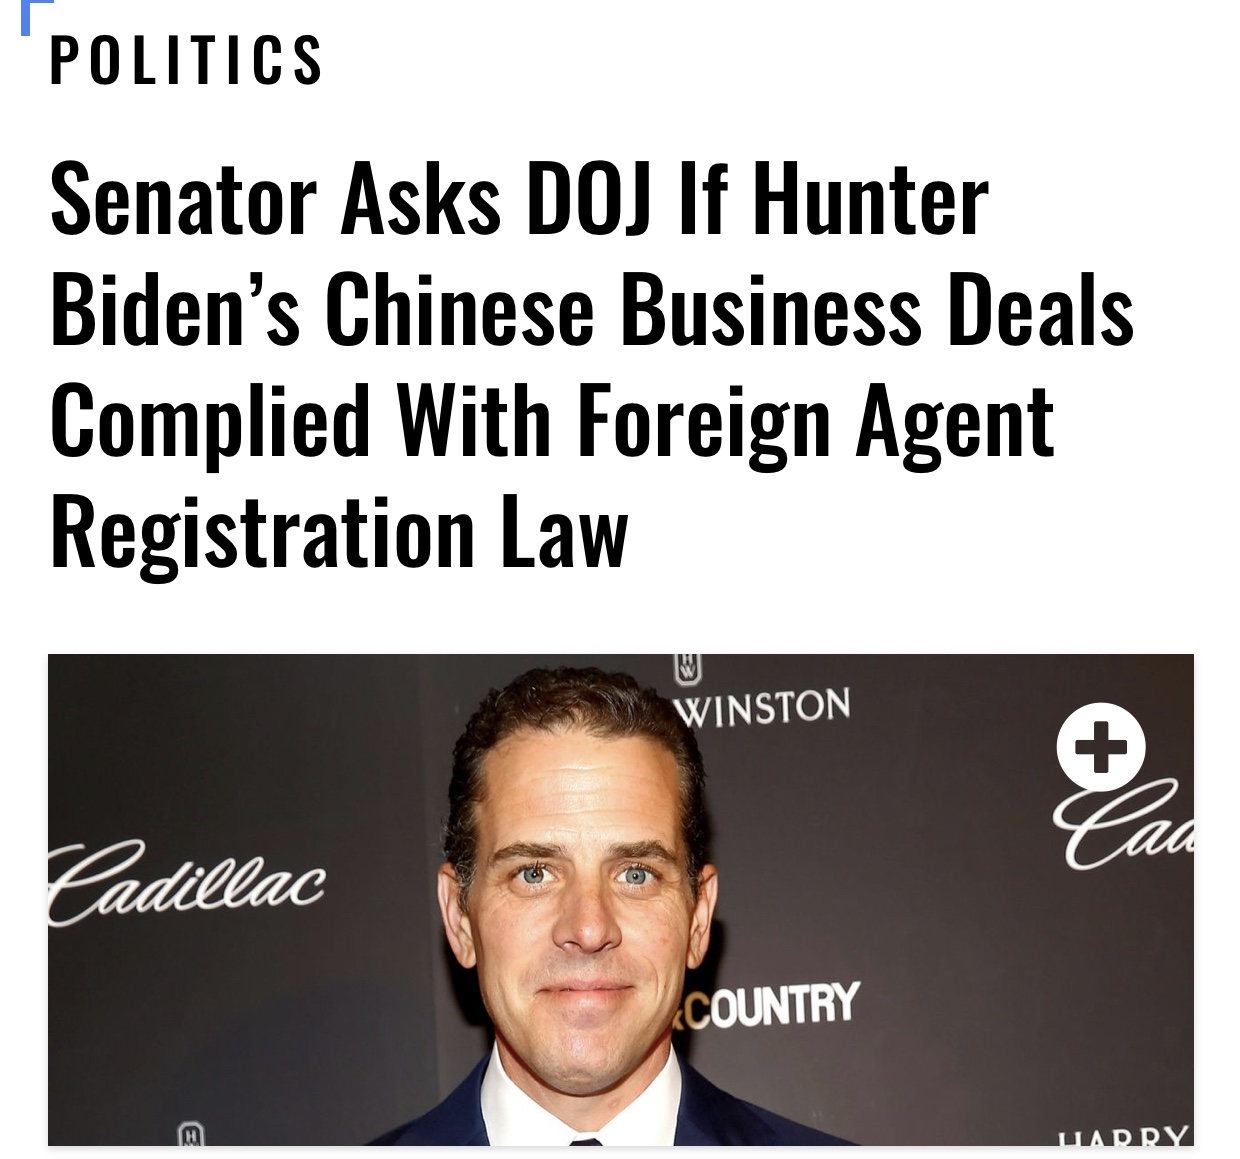 Senator Asks DOJ If Hunter Biden's Chinese Business Deals Complied With Foreign Agent Registration Law